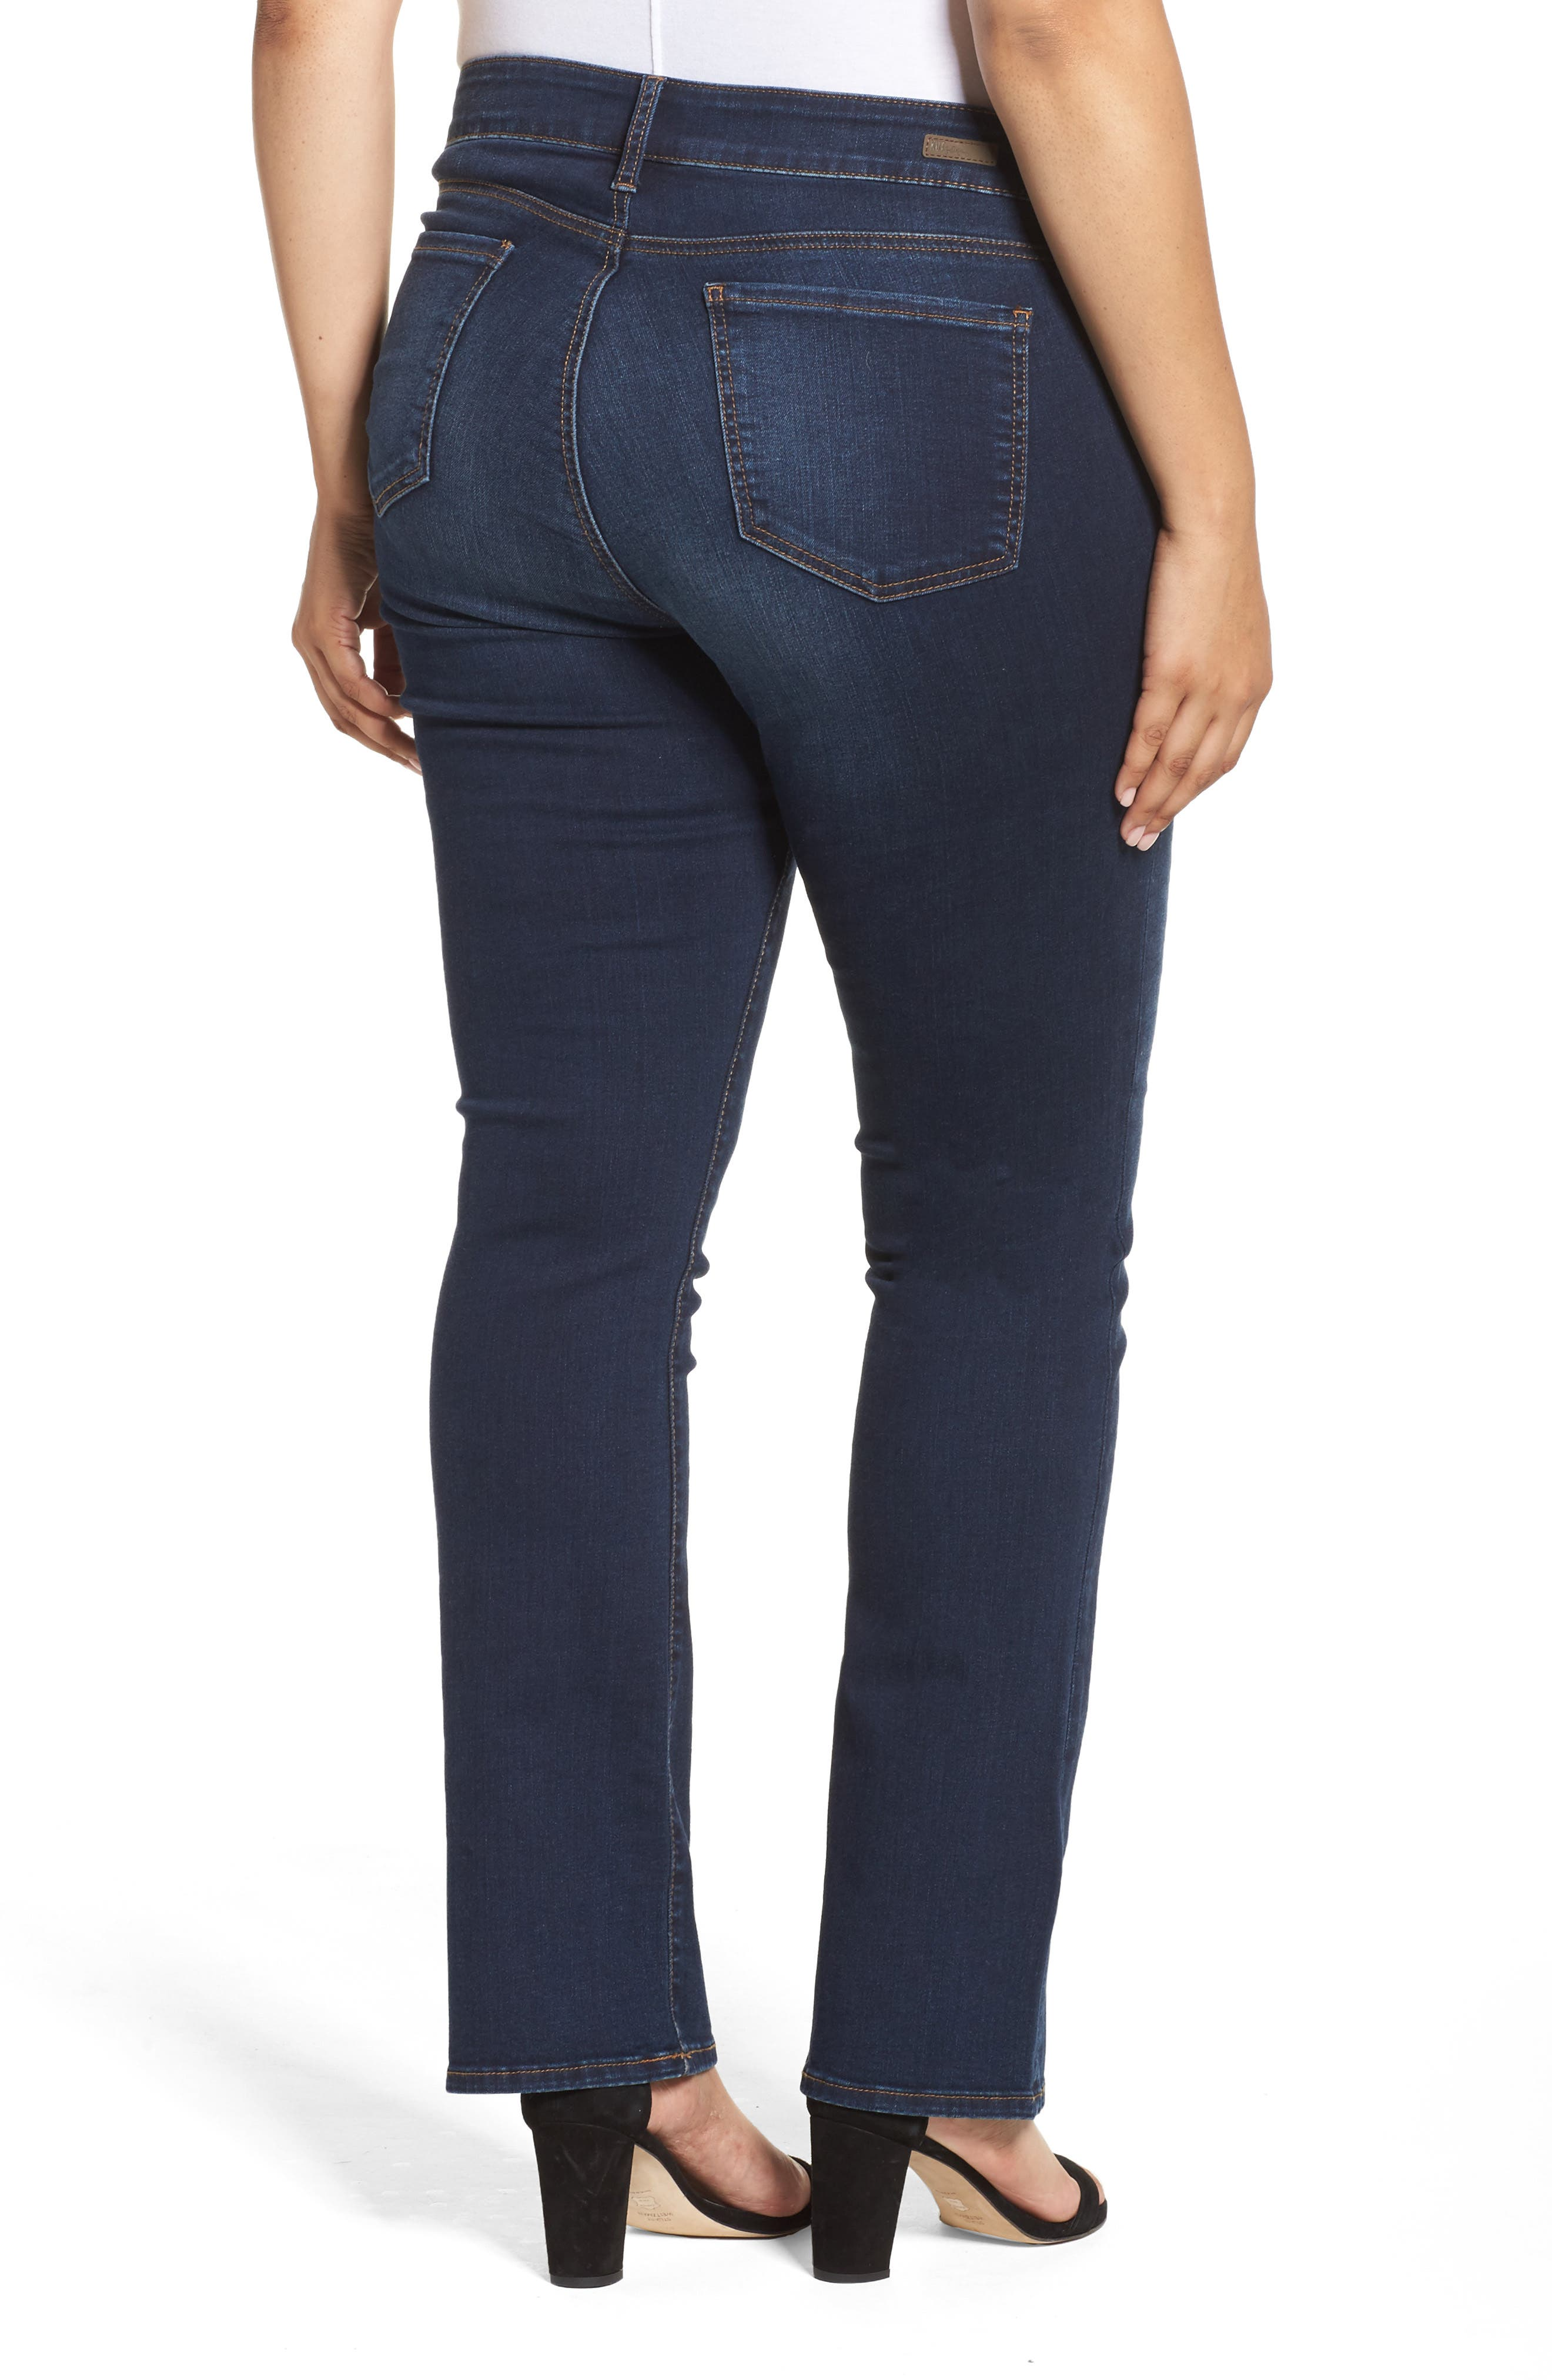 Alternate Image 2  - KUT from the Kloth Natalie High Waist Bootcut Jeans (Closeness) (Plus Size)